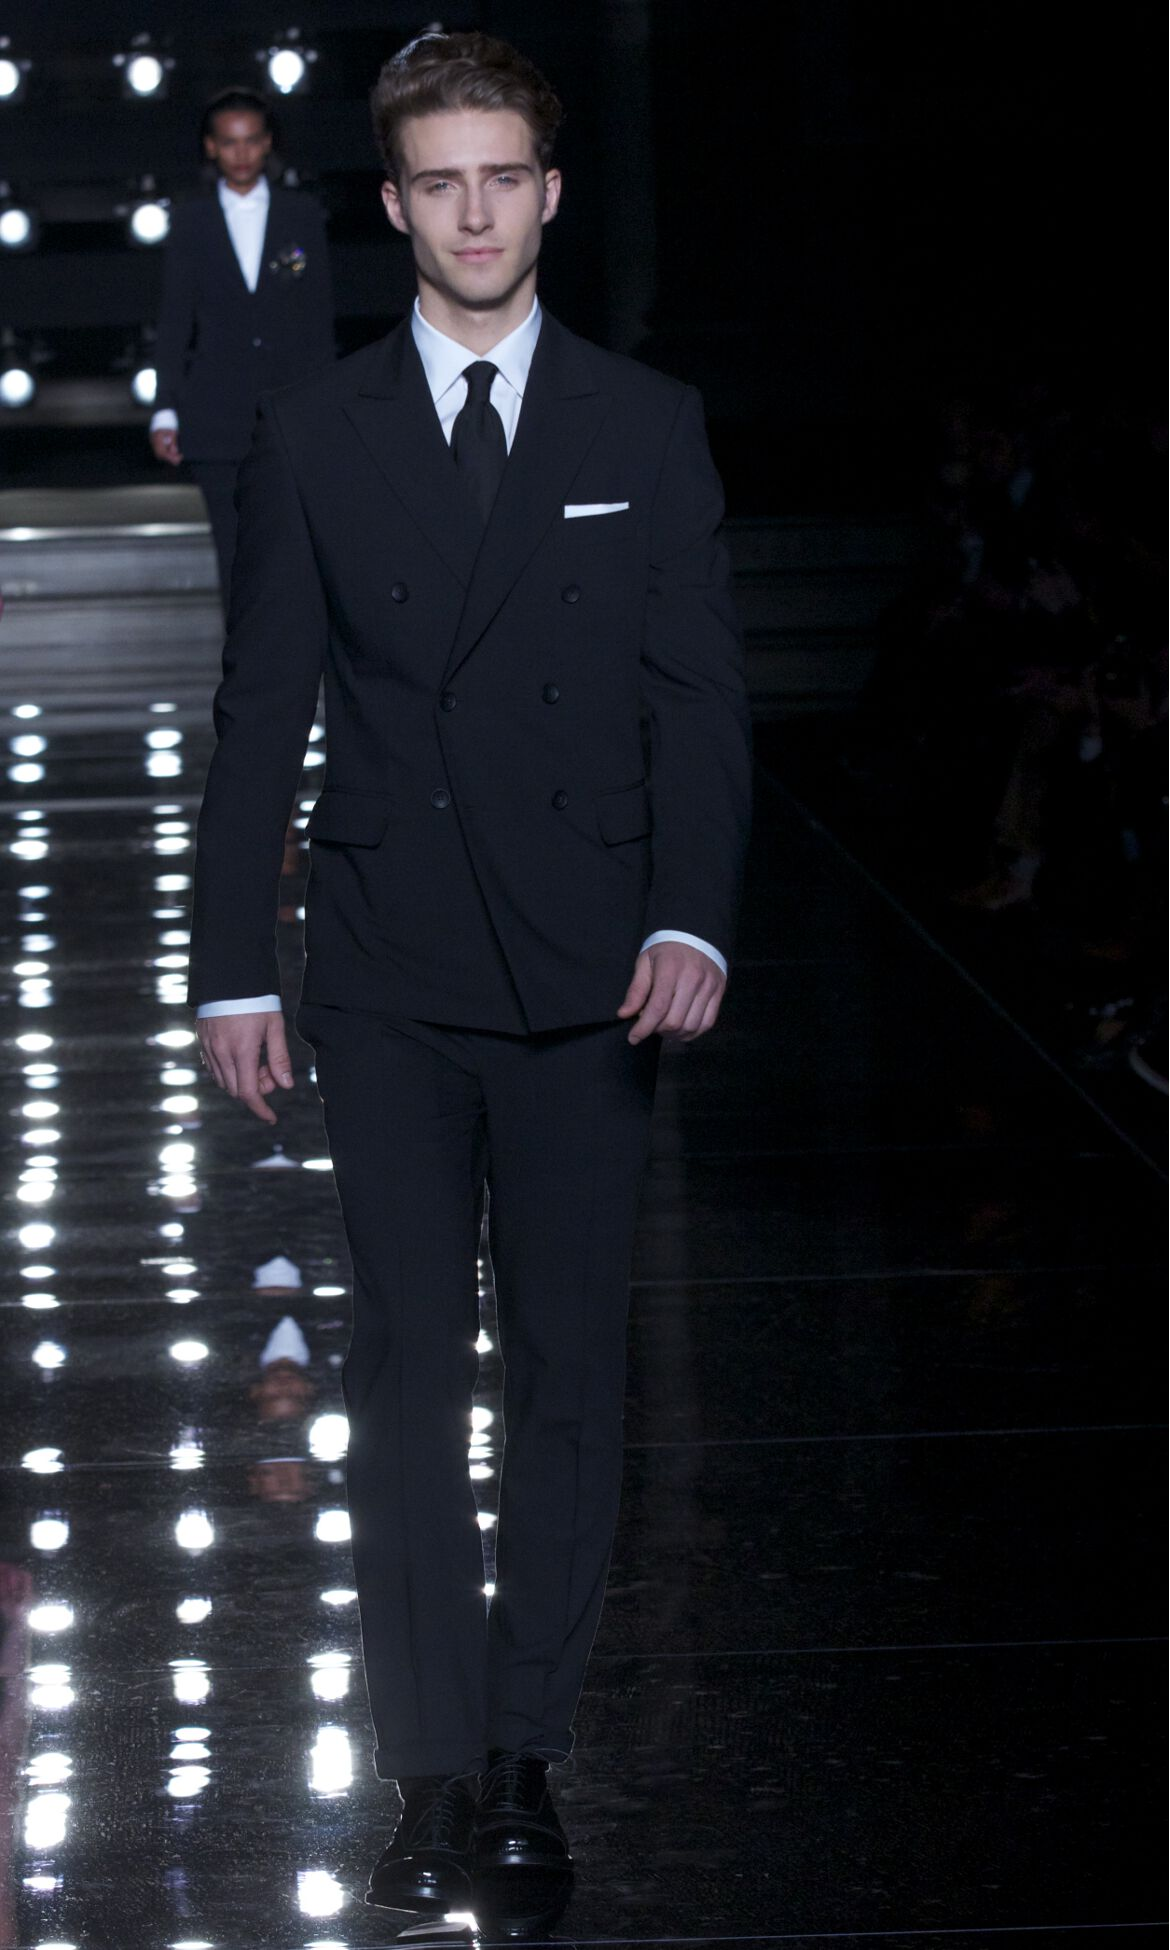 Ermanno Scervino Fashion Show Man Model